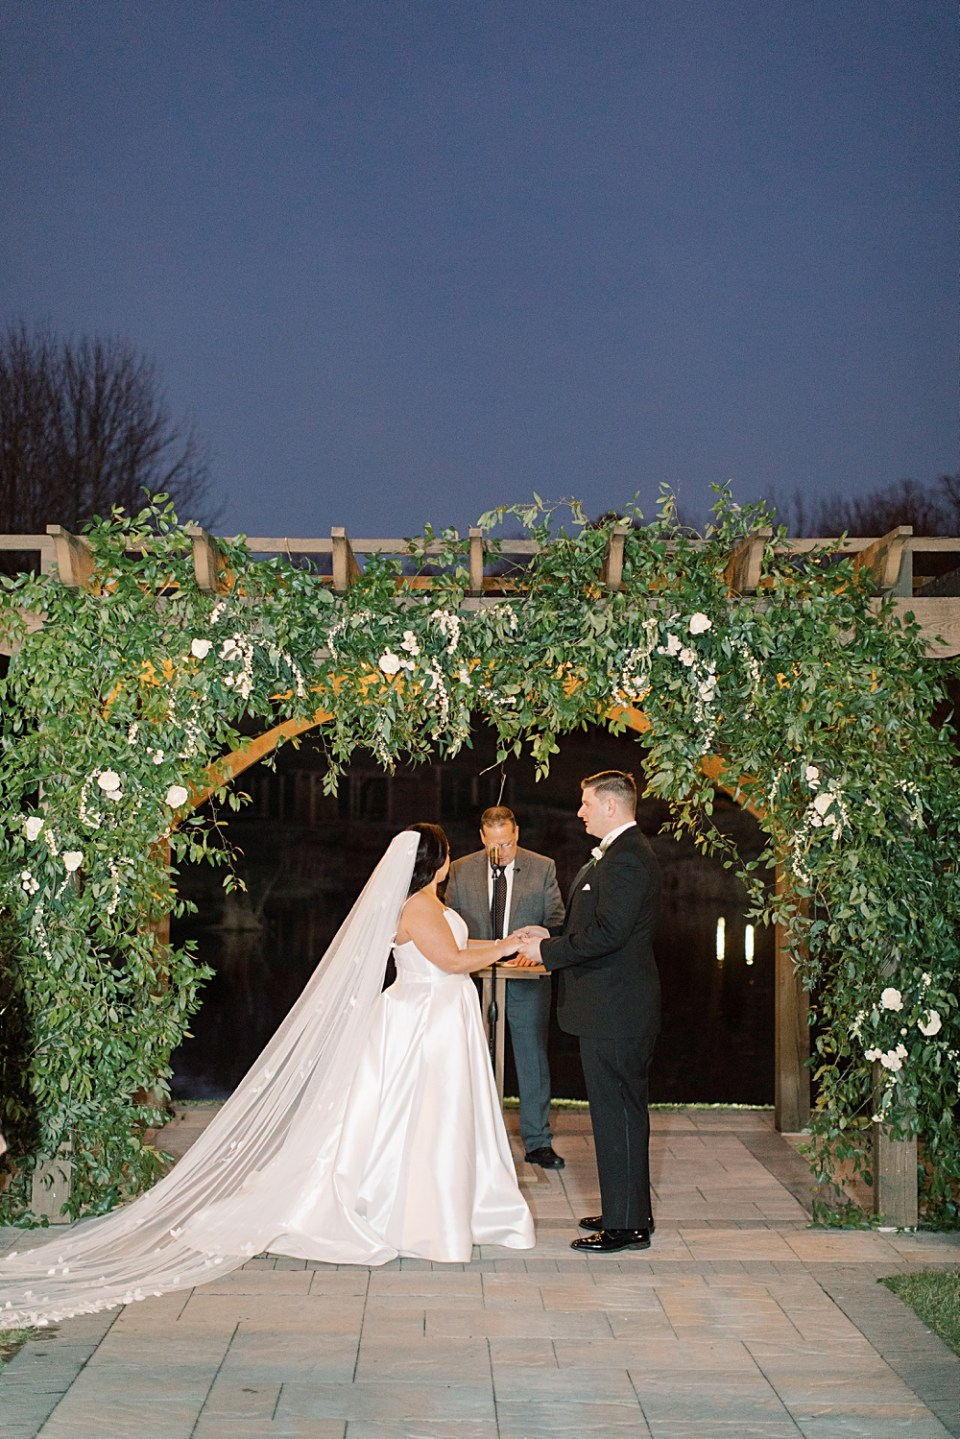 outdoor ceremony at dusk | bear brook valley wedding | sarah canning photography